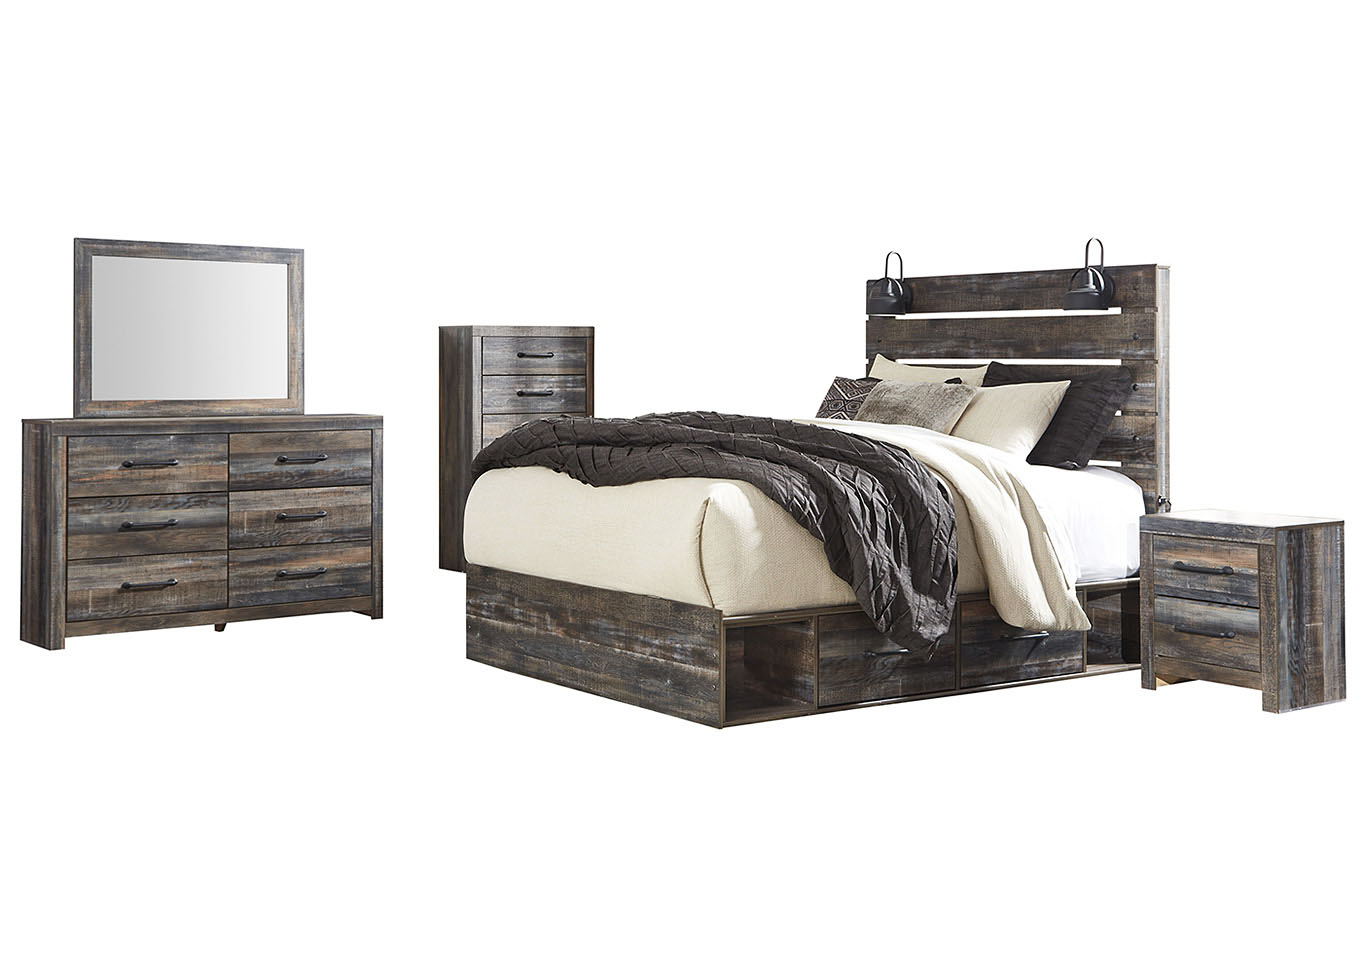 Drystan Queen Panel Bed with 2 Storage Drawers w/Dresser and Mirror,Signature Design By Ashley